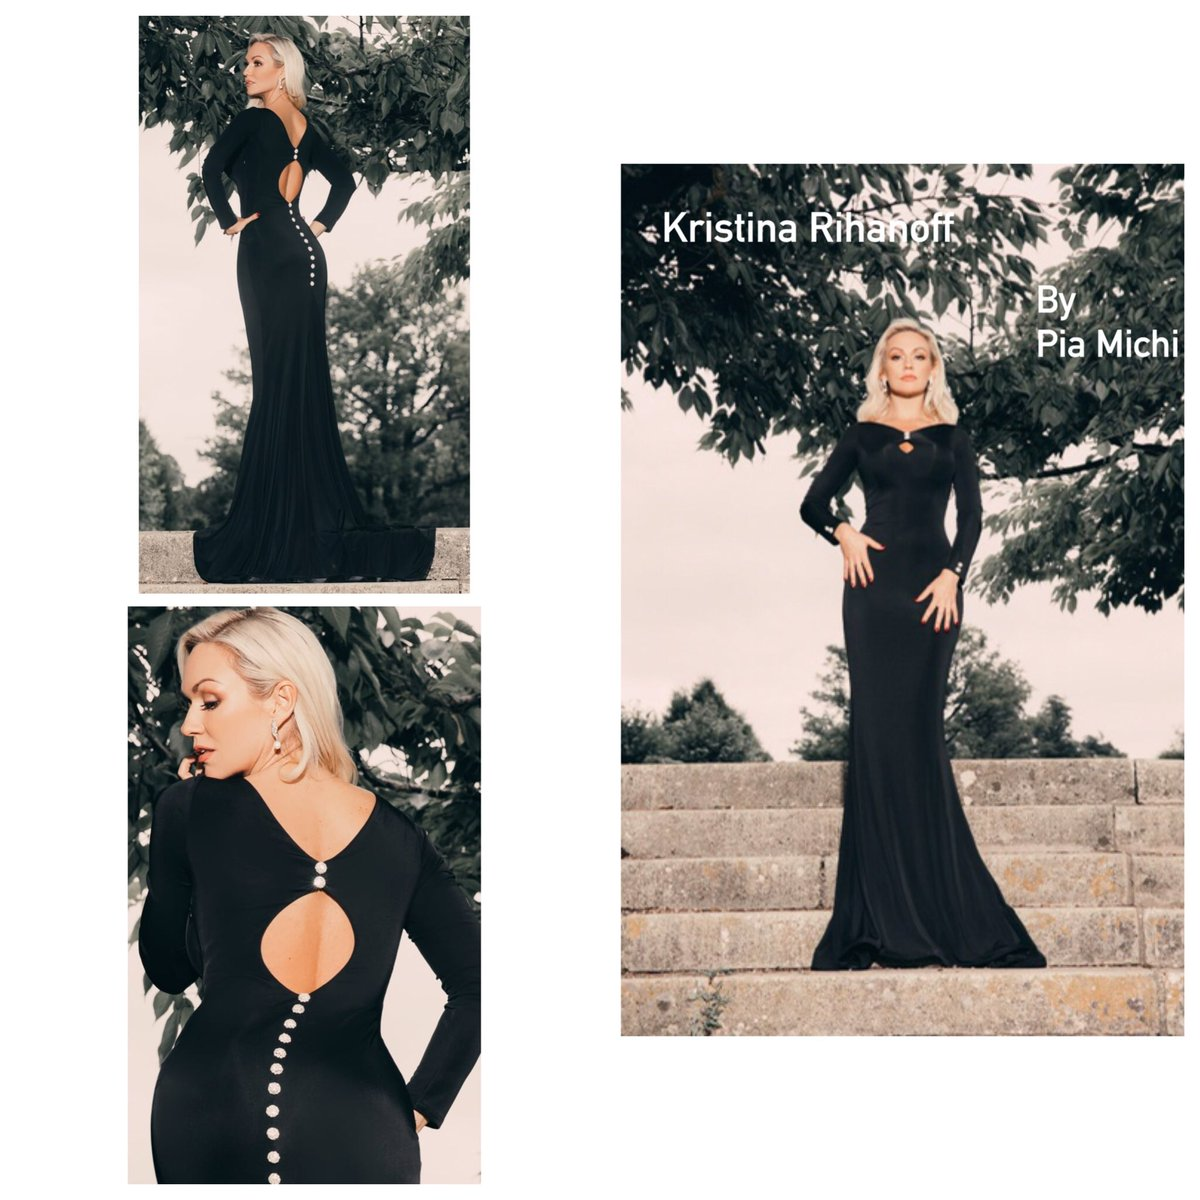 Gorgeous new #dress from new @KRihanoff collection at @Piamichi available in store #RedCarpet #ball #prom #party  #Worcestershirehour<br>http://pic.twitter.com/Lb8f8mPuUp